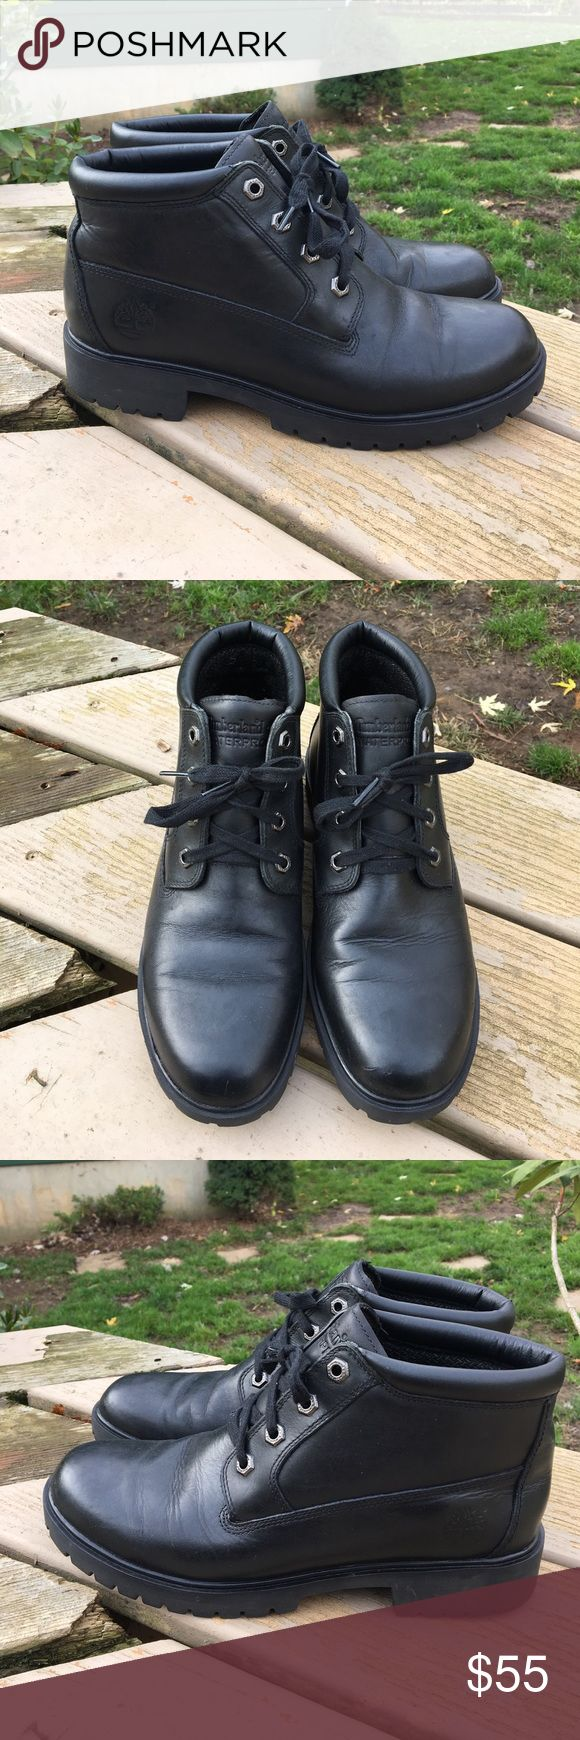 Women's Timberland Nellie Premium Chukka Boot Women's Timberland Nellie Premium Chukka Boot Color: Black Size 9M Great used condition. Probably worn only a couple times. Timberland Shoes Ankle Boots & Booties